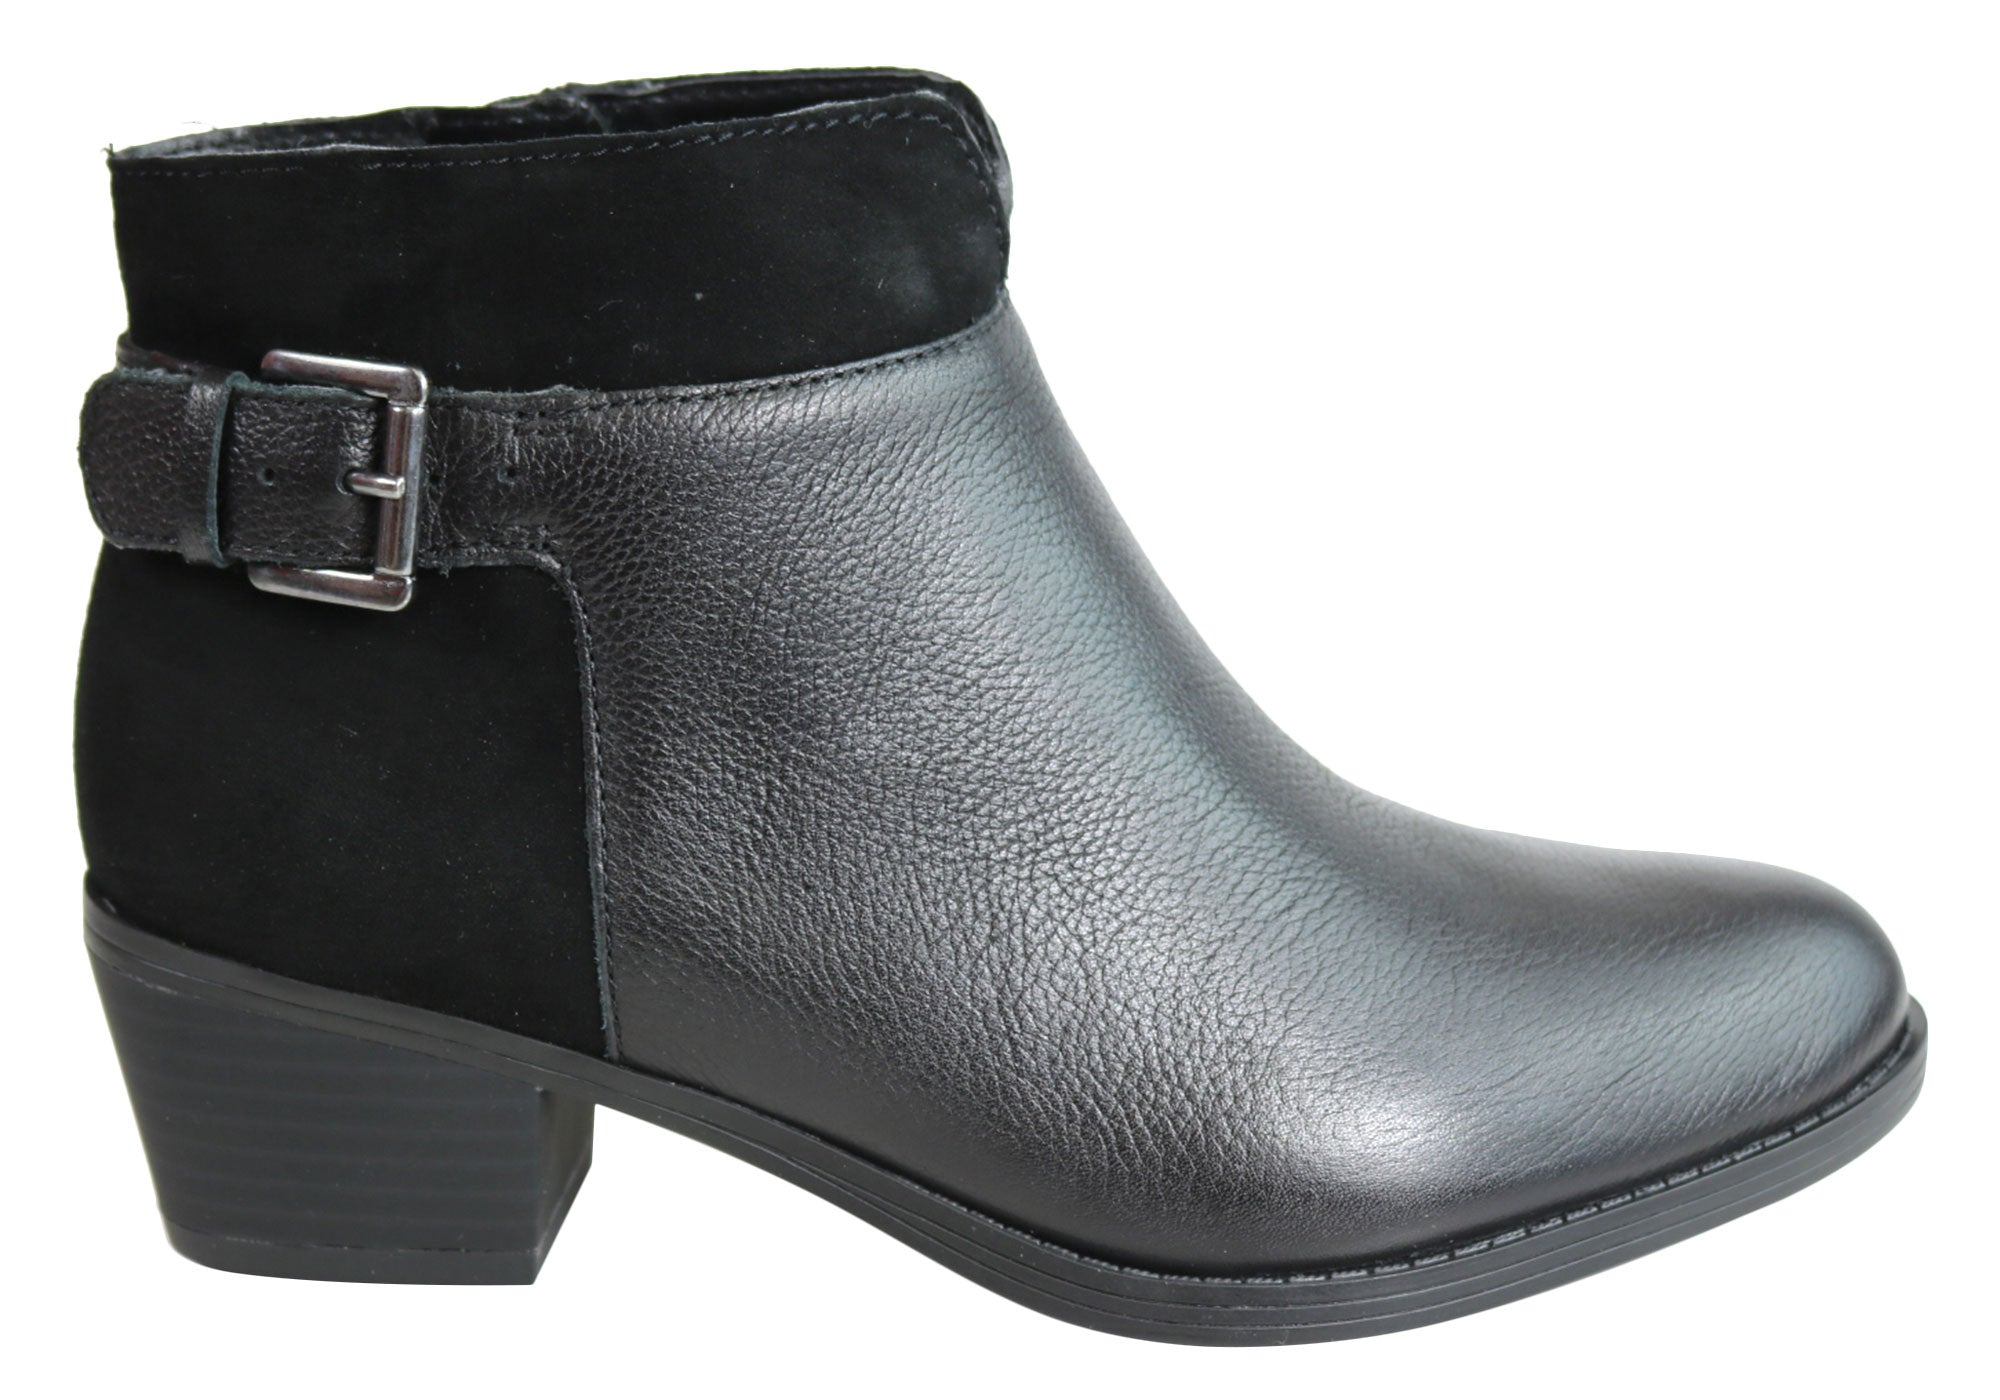 0280b6d0a91a7 Home Naturalizer Wanya Womens Comfortable Leather Low Heel Ankle Boots.  Saddle Tan; Black ...